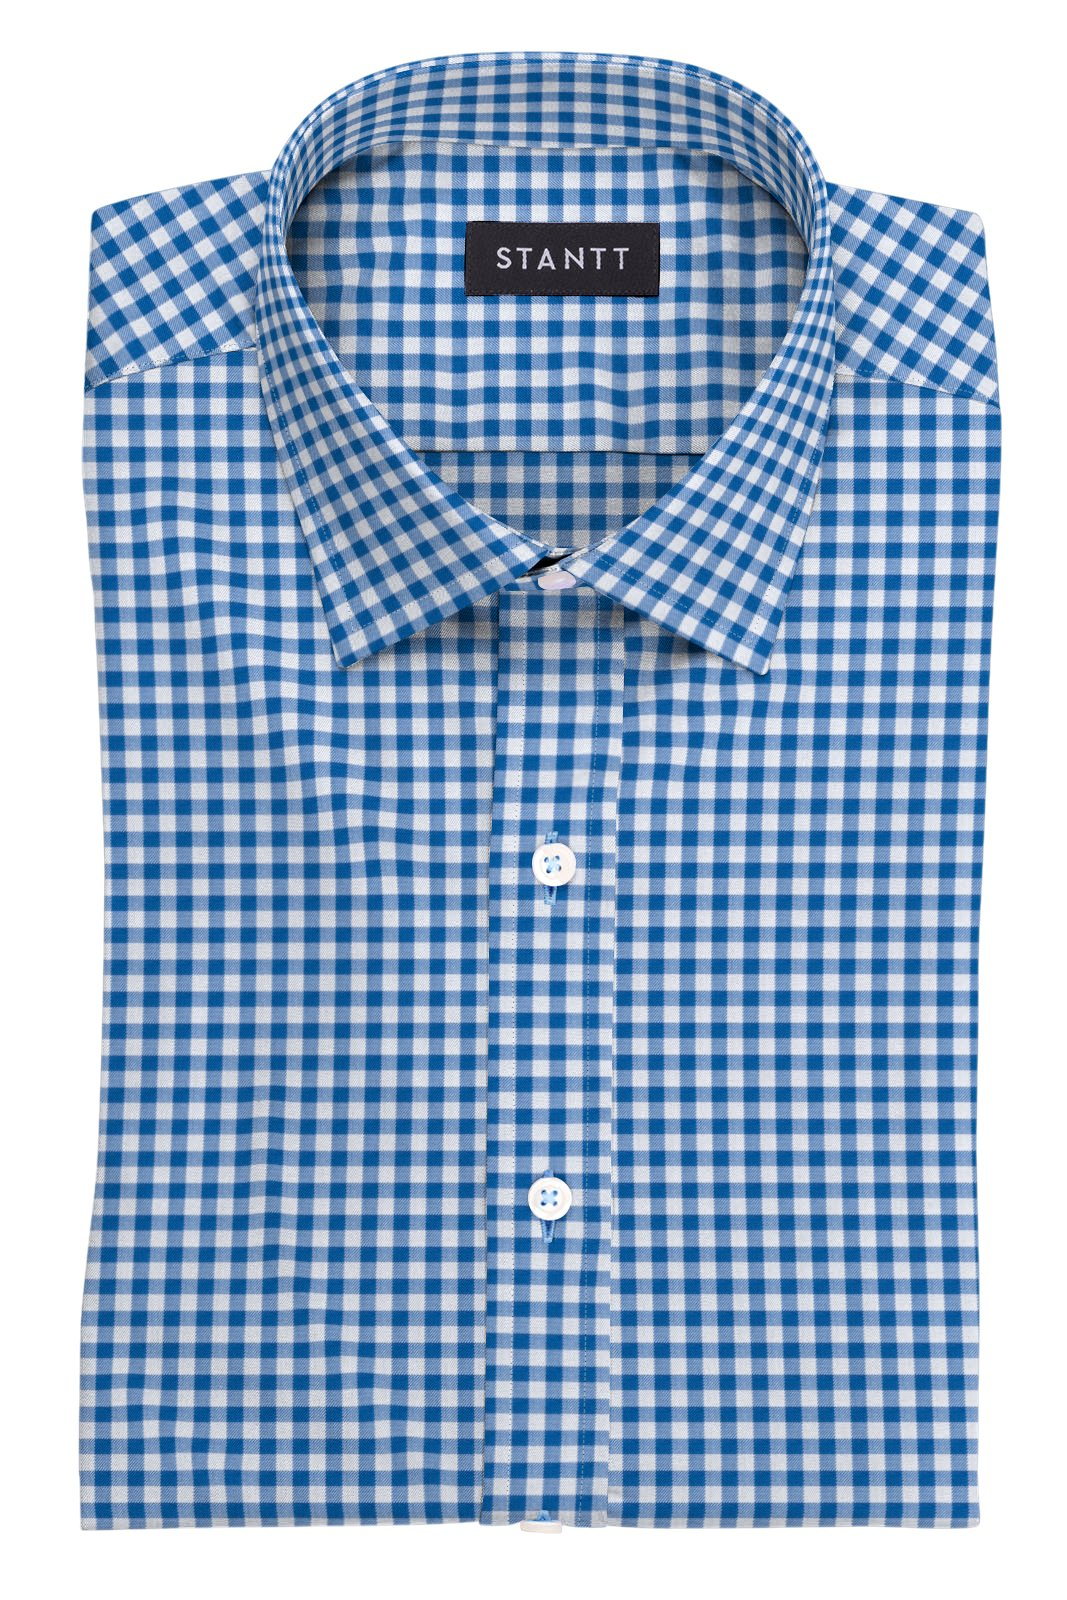 Blue Gingham: Modified Spread Collar, Barrel Cuff